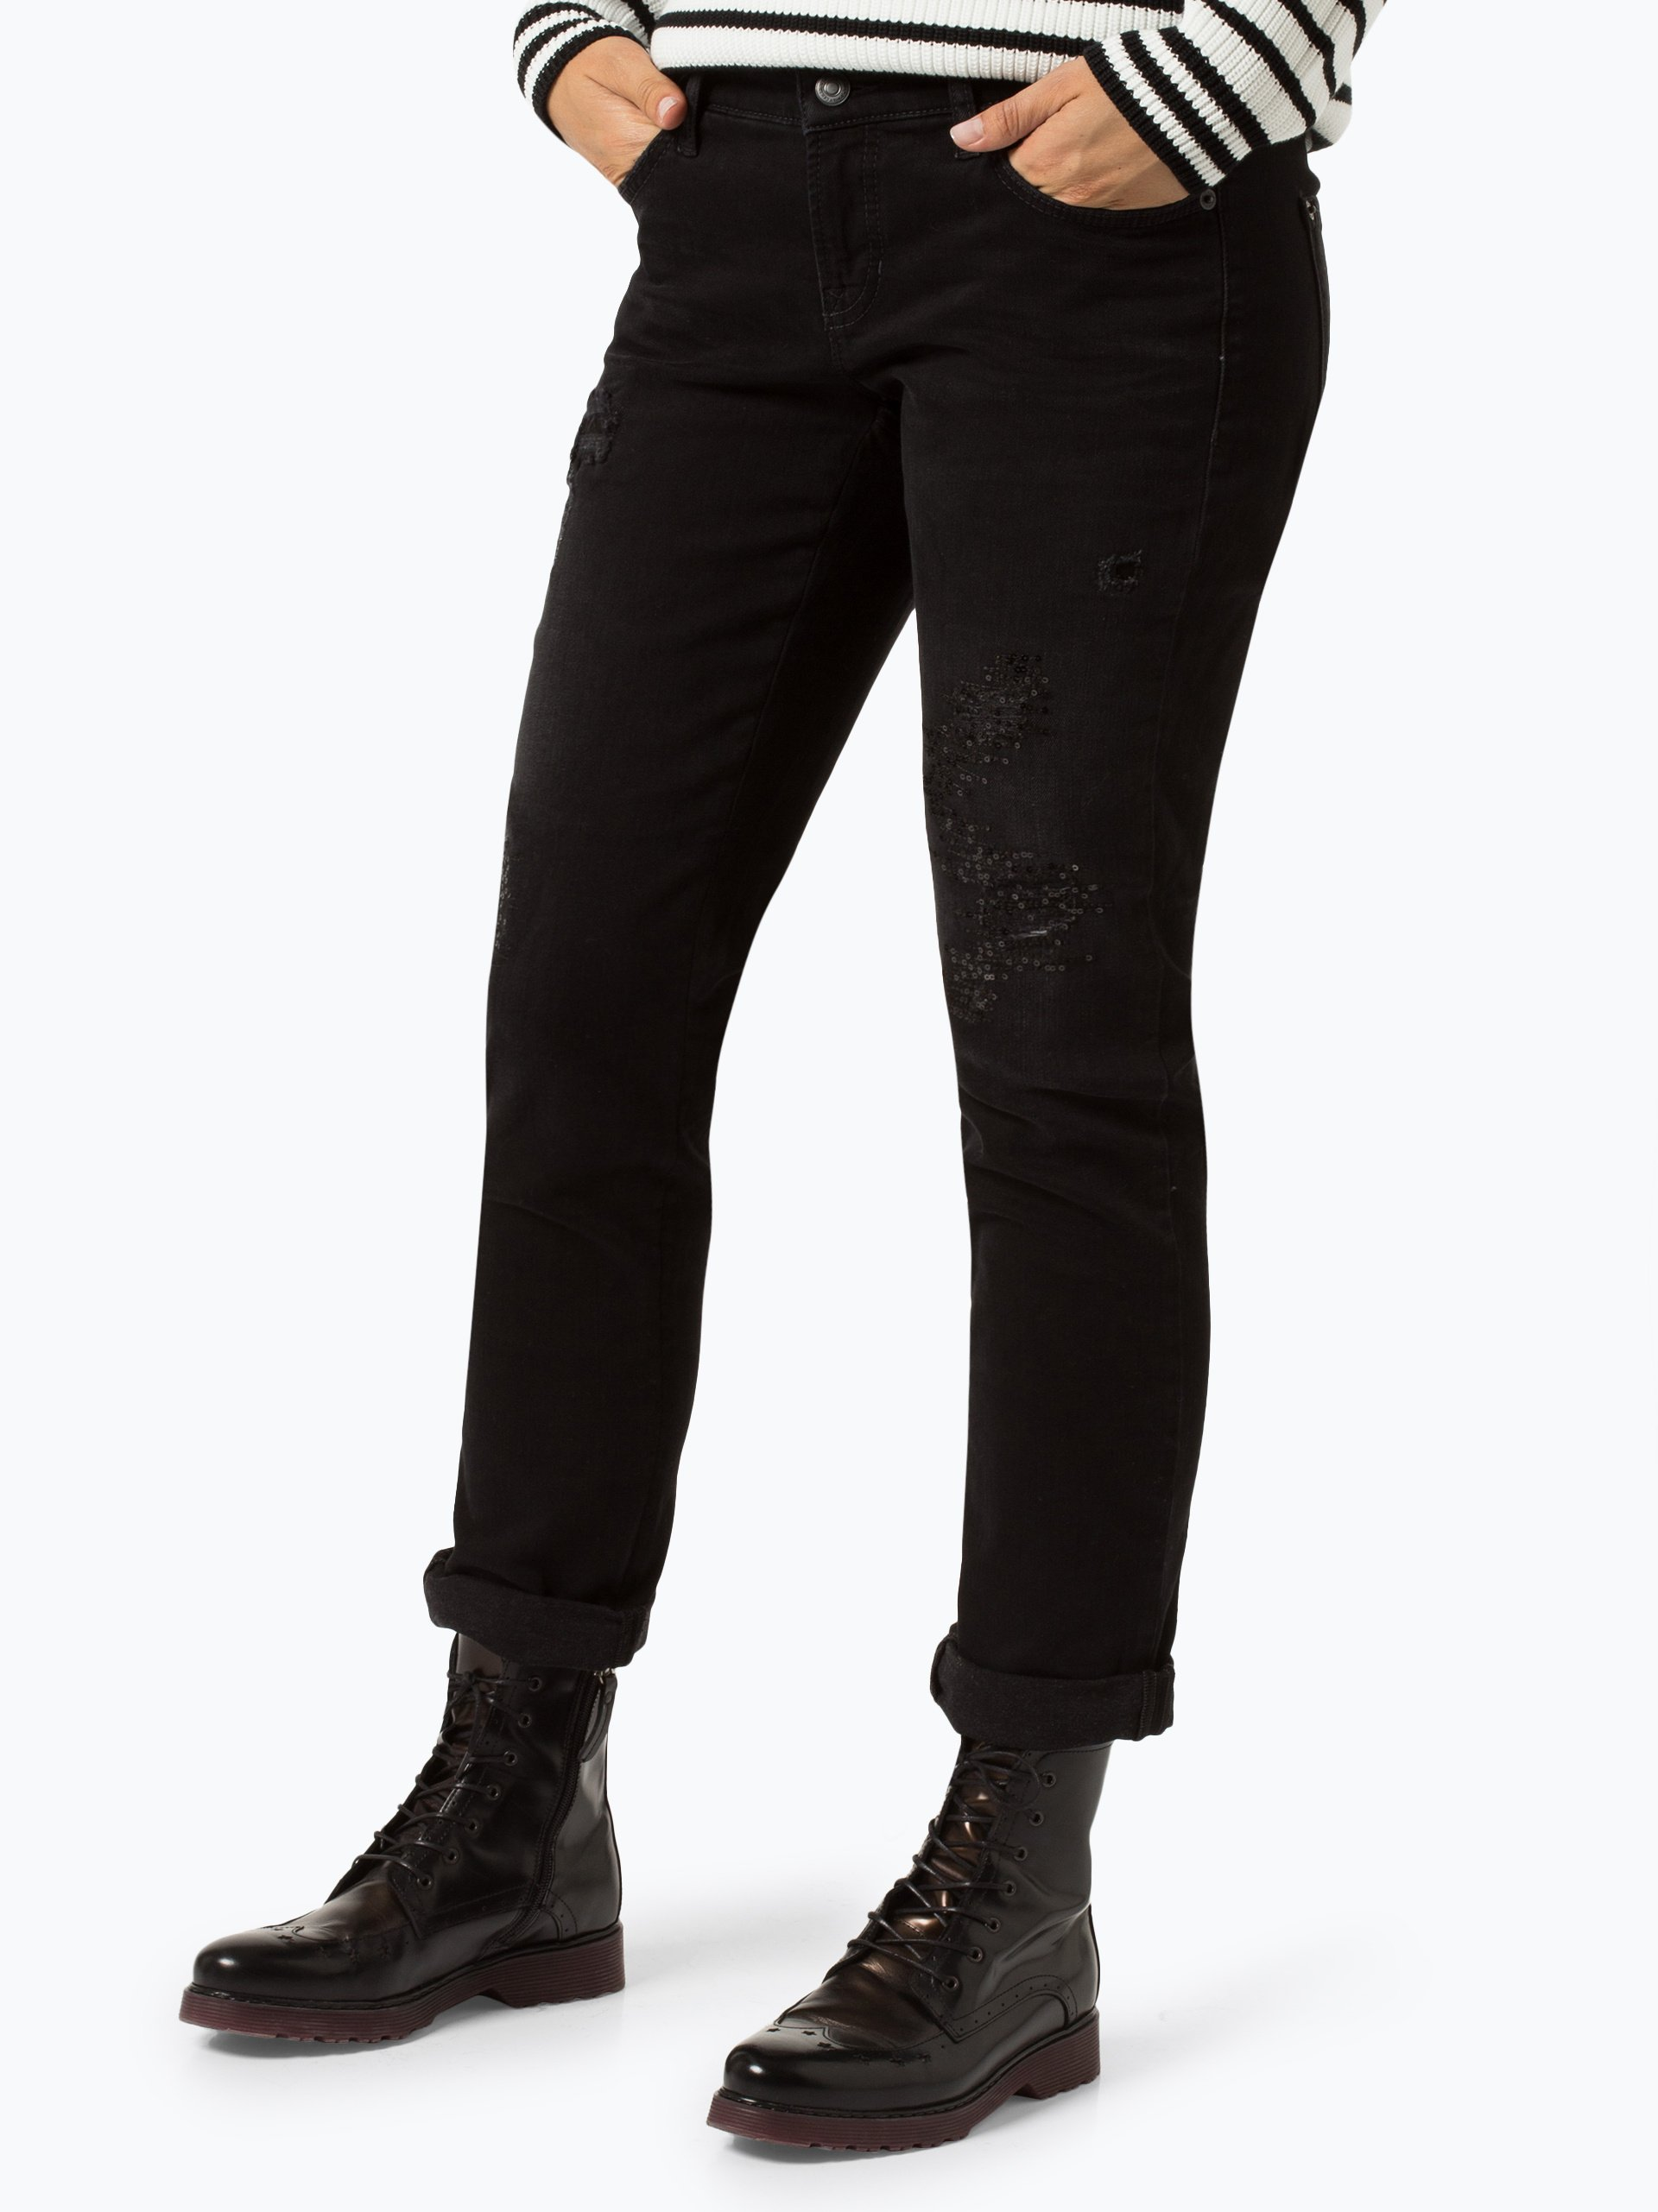 Cambio Damen Jeans - Laurie